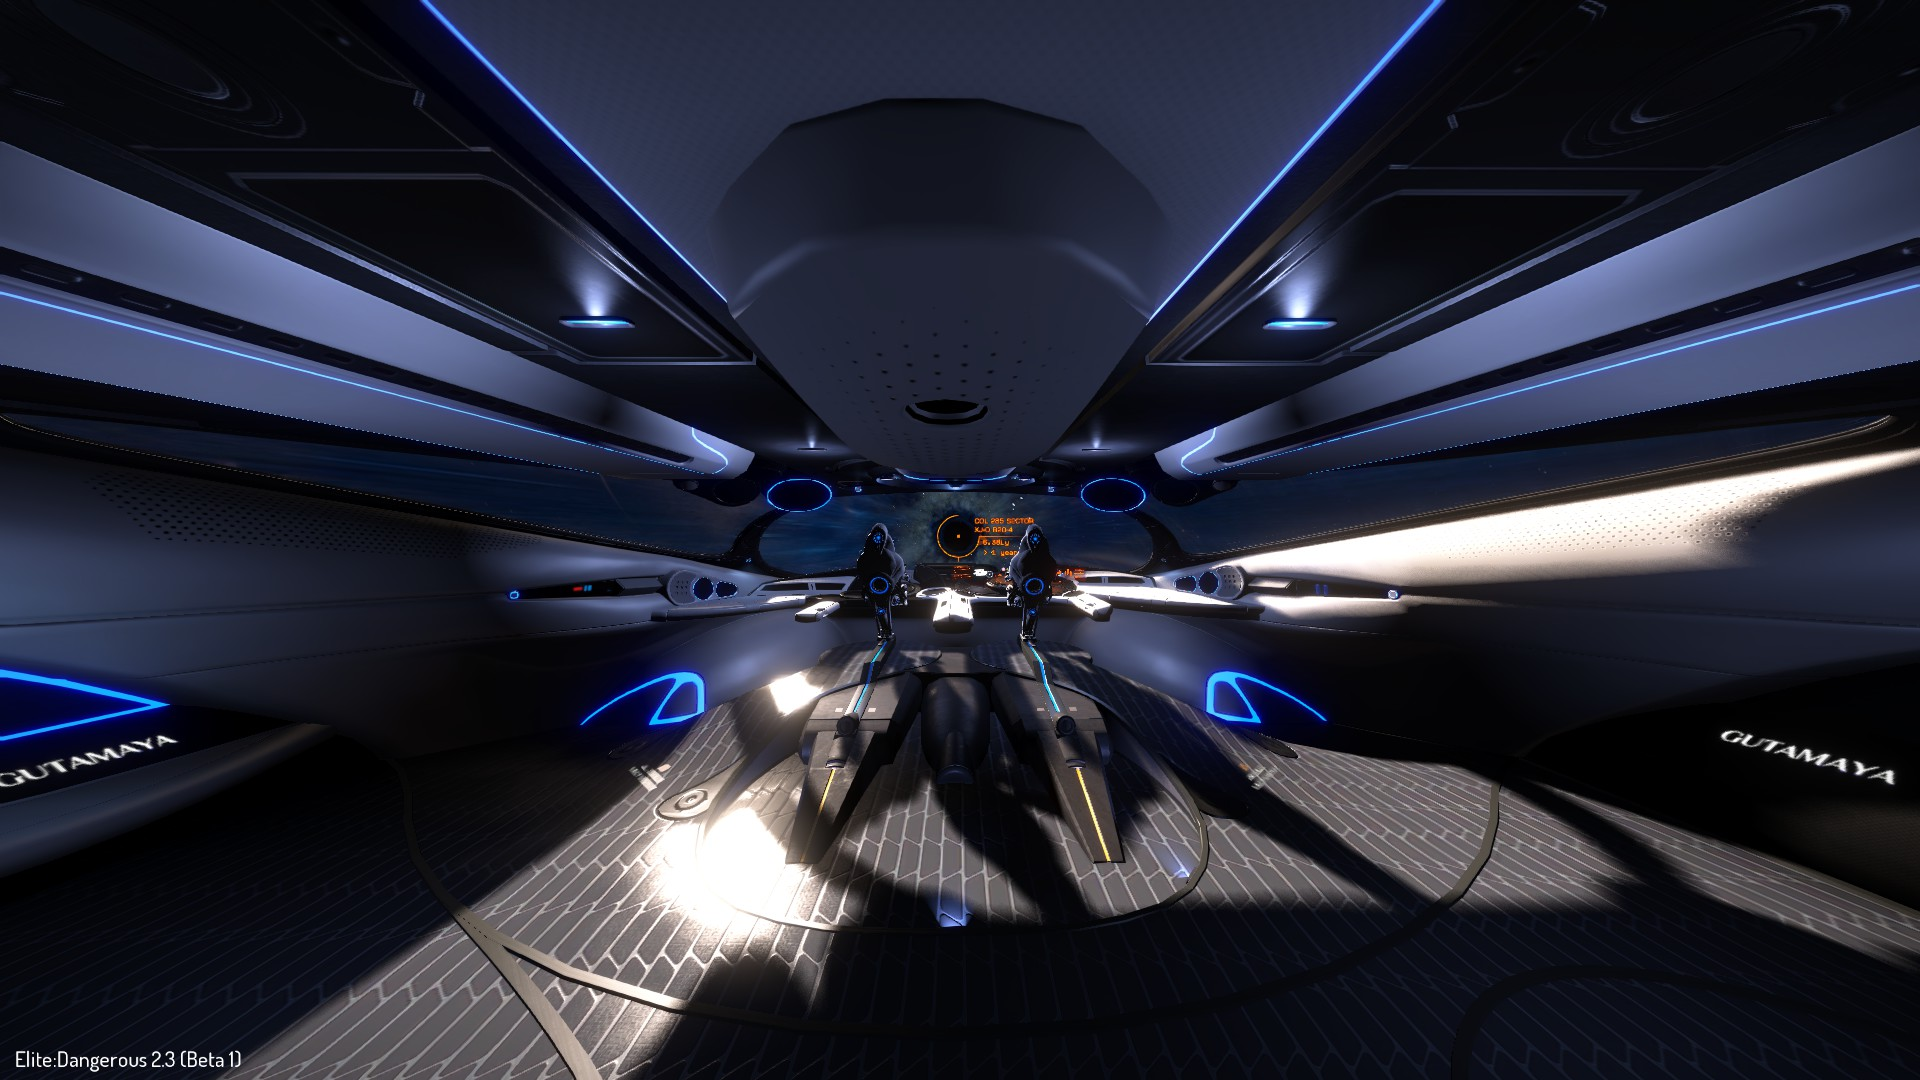 Elite Dangerous Imperial Cutter Interior